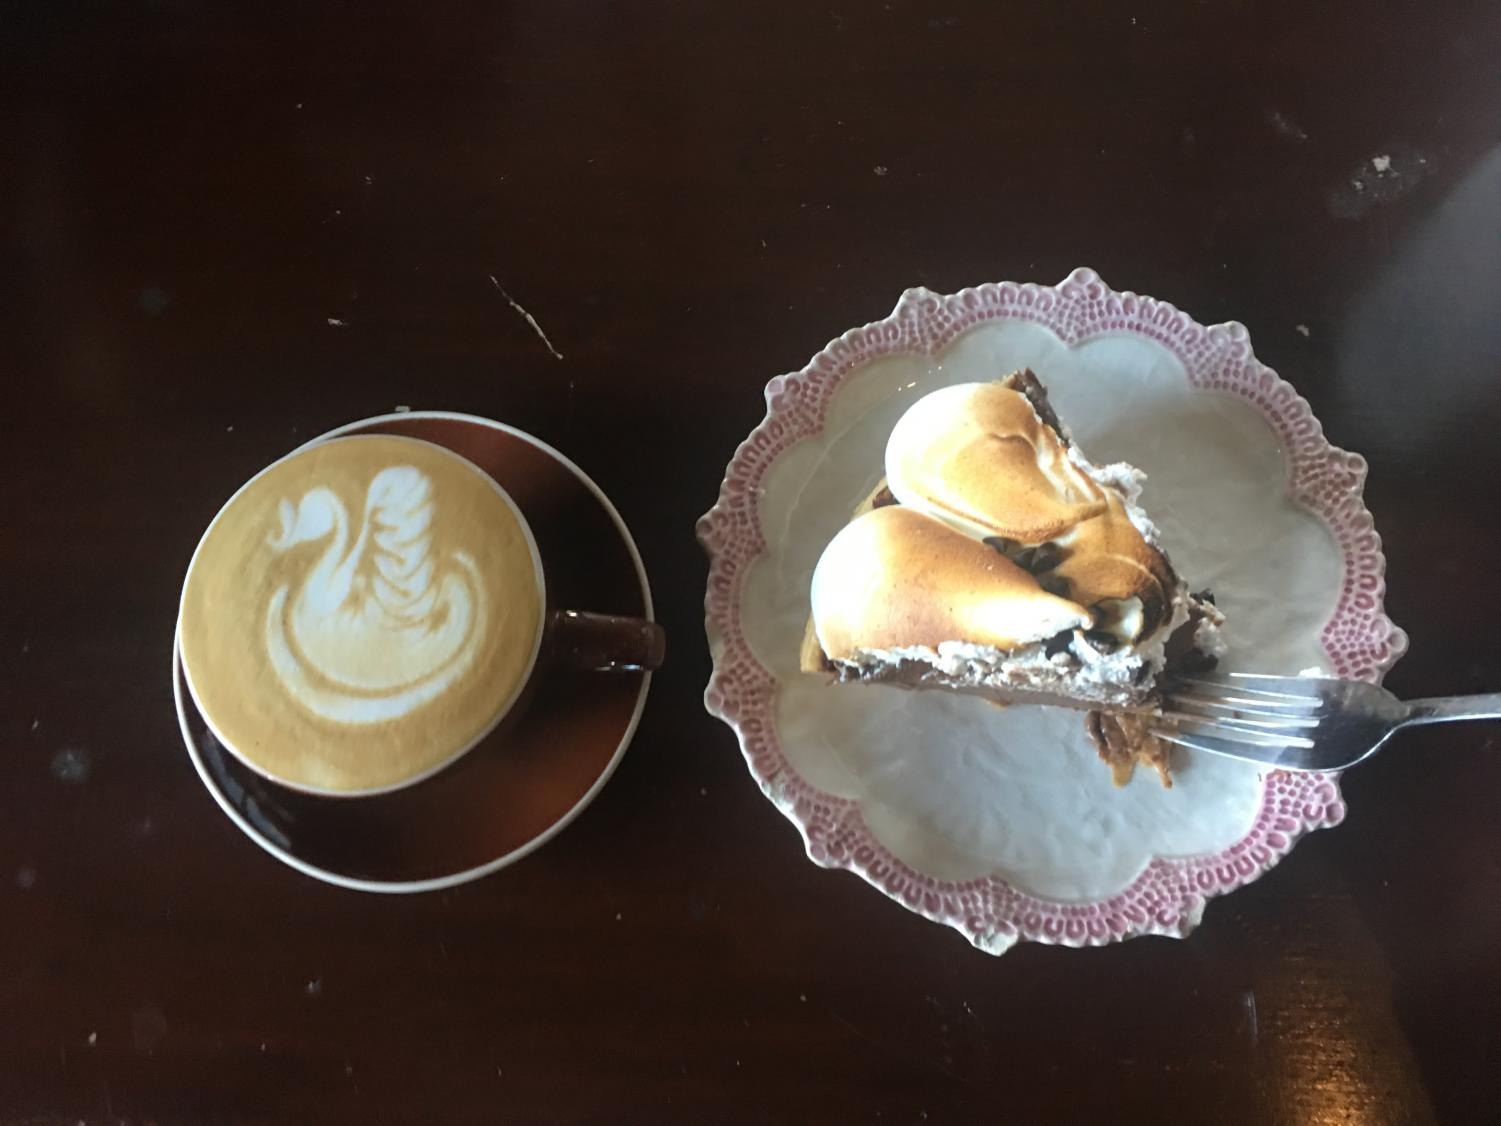 The delicious chocolate pie and the bitter cappuccino. At least the cappuccino looks cute in the photo!